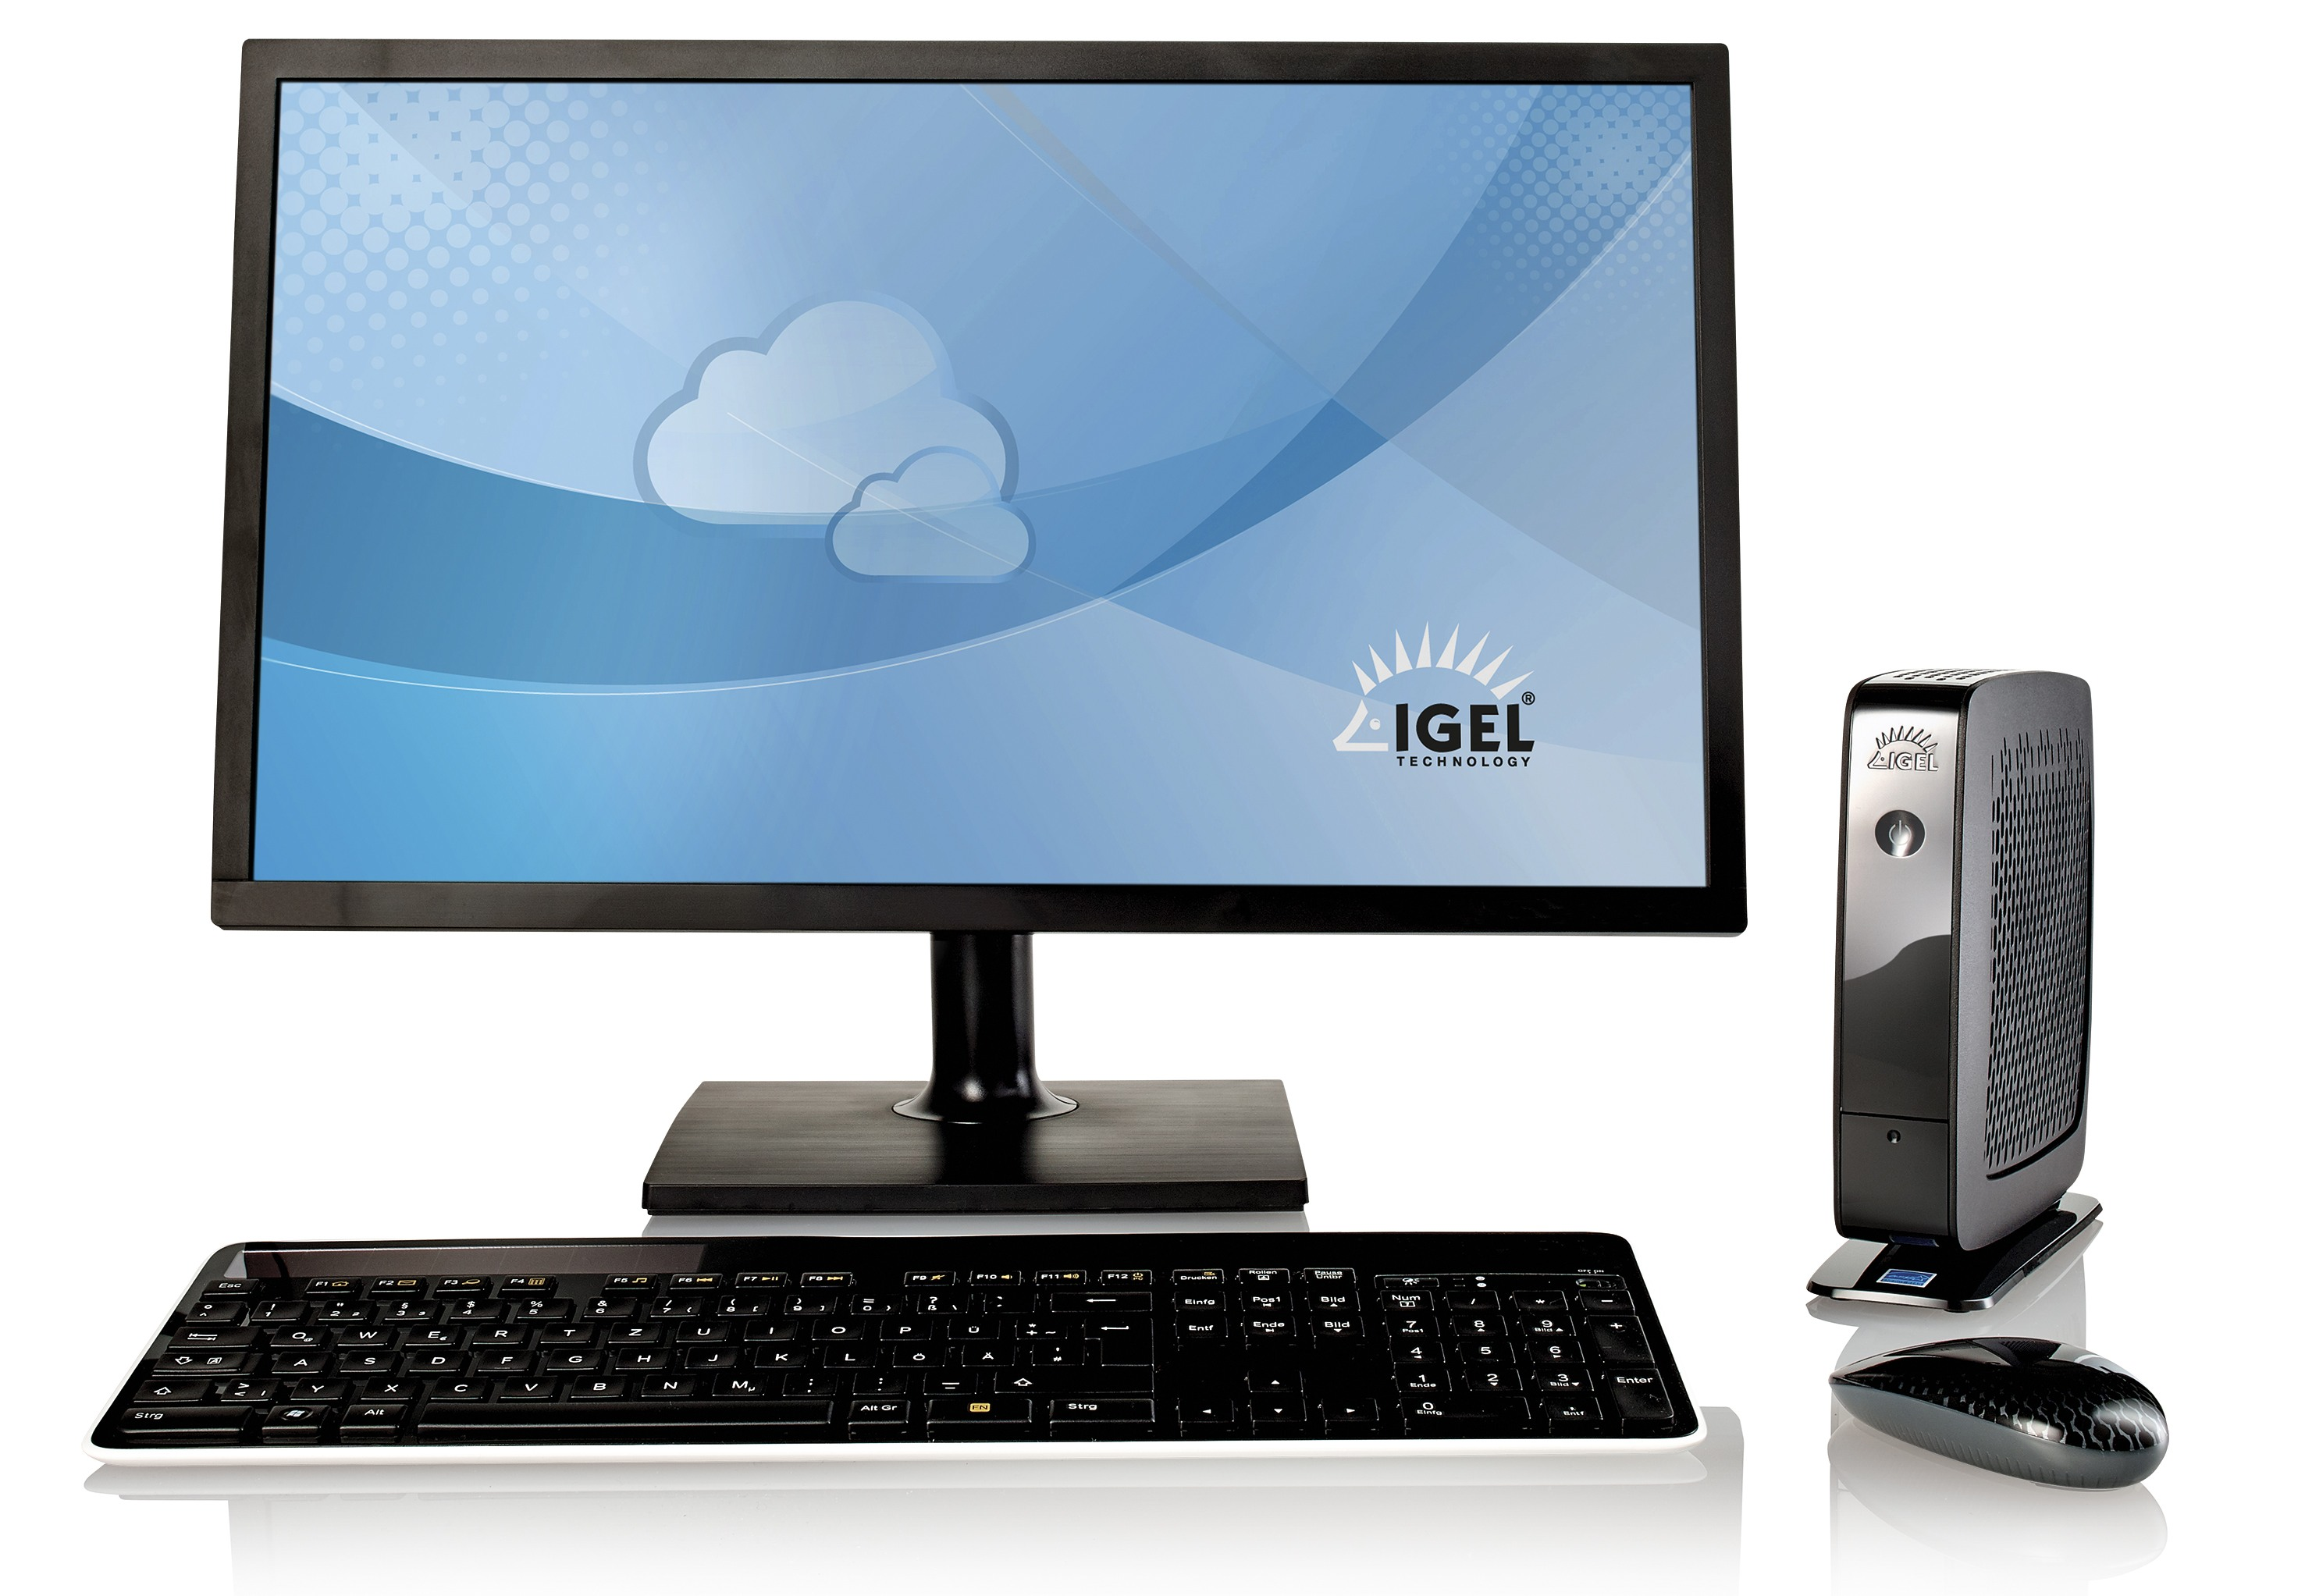 IGEL redefines the entry-level thin client as a powerful desktop